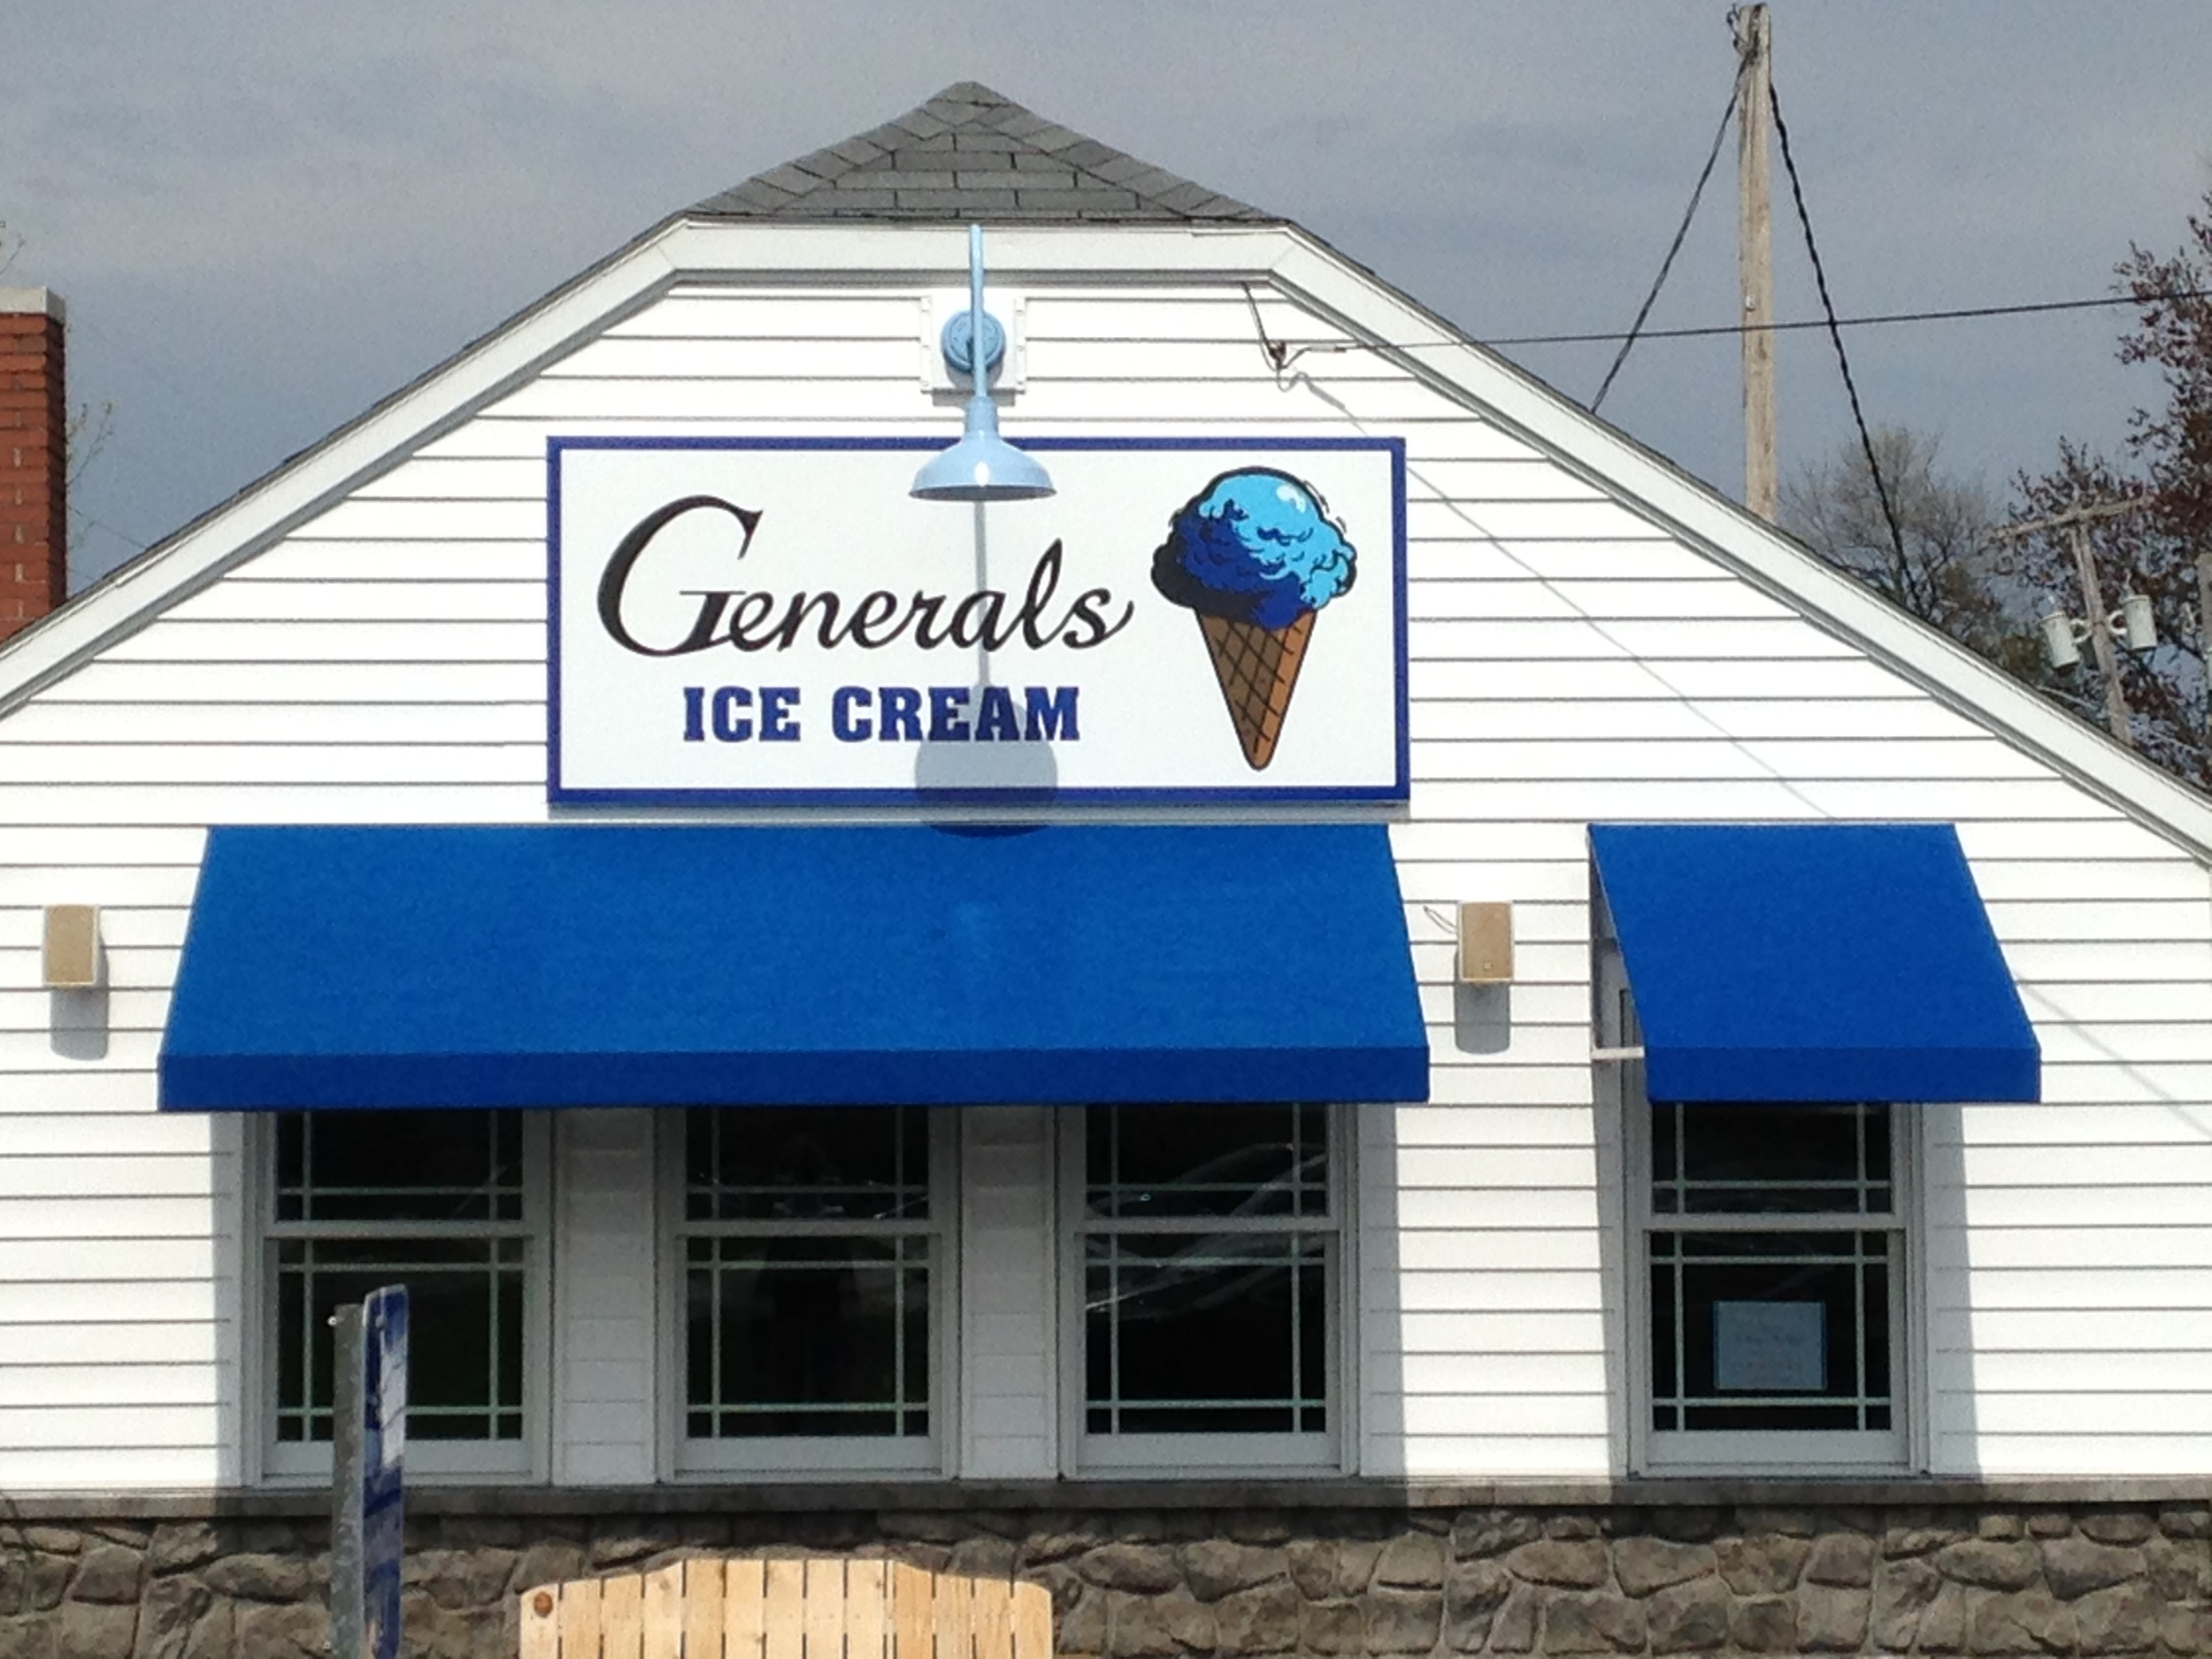 Generals Ice Cream